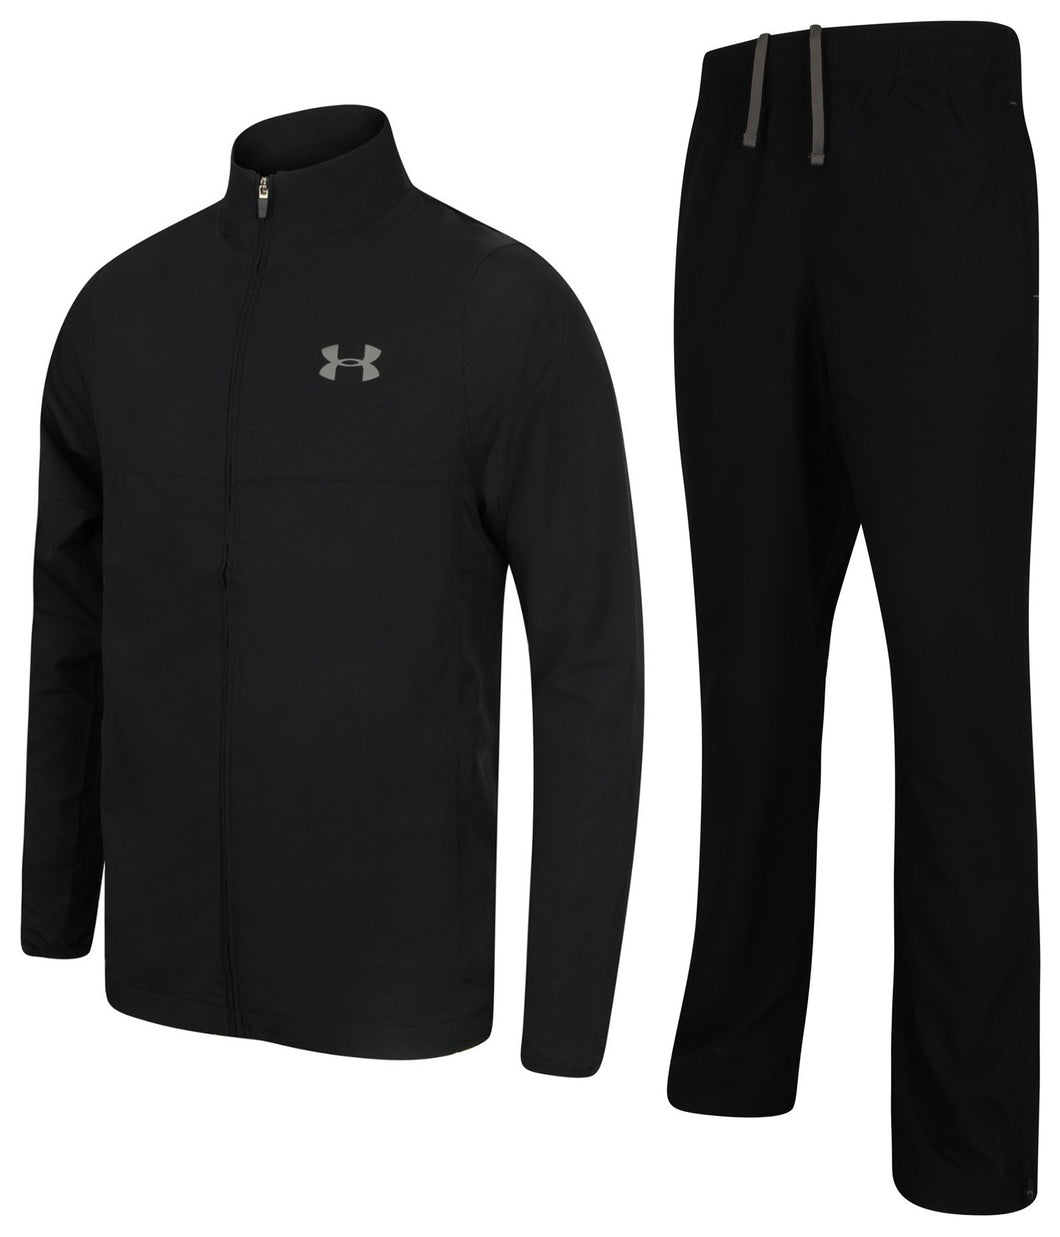 Under Armour Men's Vital Warm Up HeatGear Black Woven Open Hem Full Tracksuit